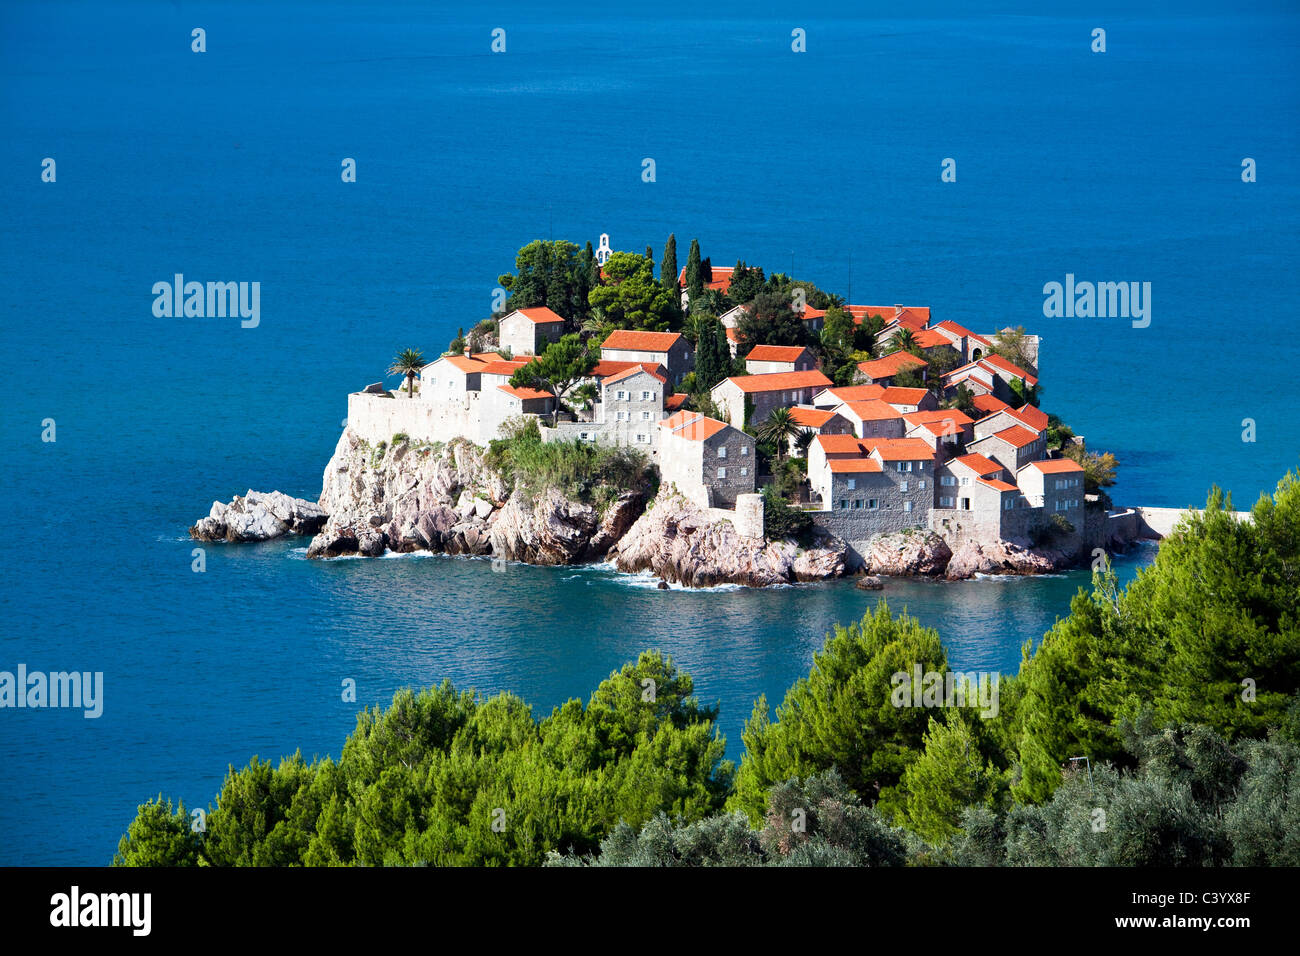 Montenegro, Europe, Adriatic, sea, Sveti Stefan, Old Town, peninsula - Stock Image